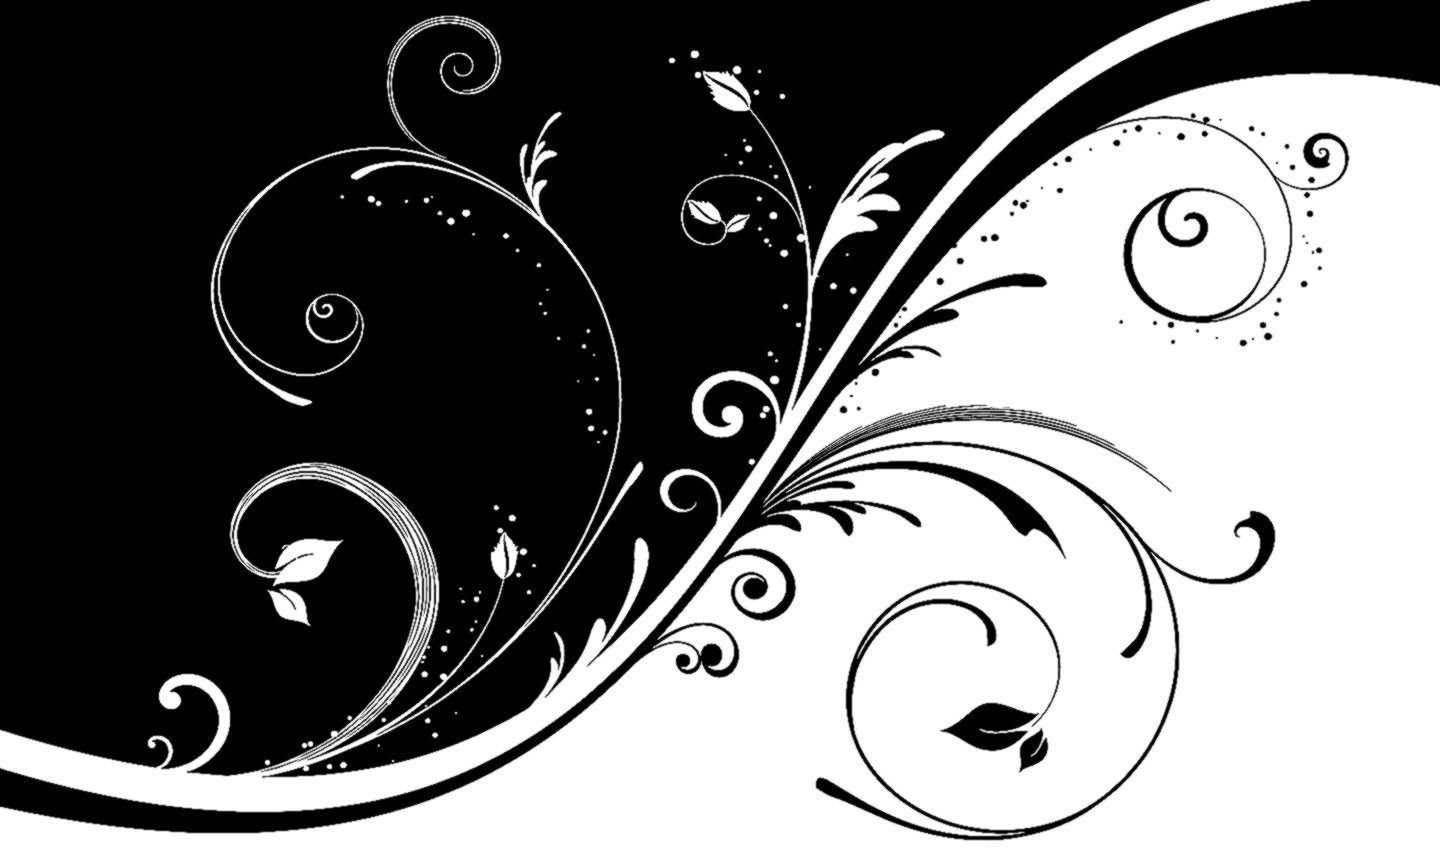 Black And White Abstract Drawings Hd Images 3 HD Wallpapers  amagico